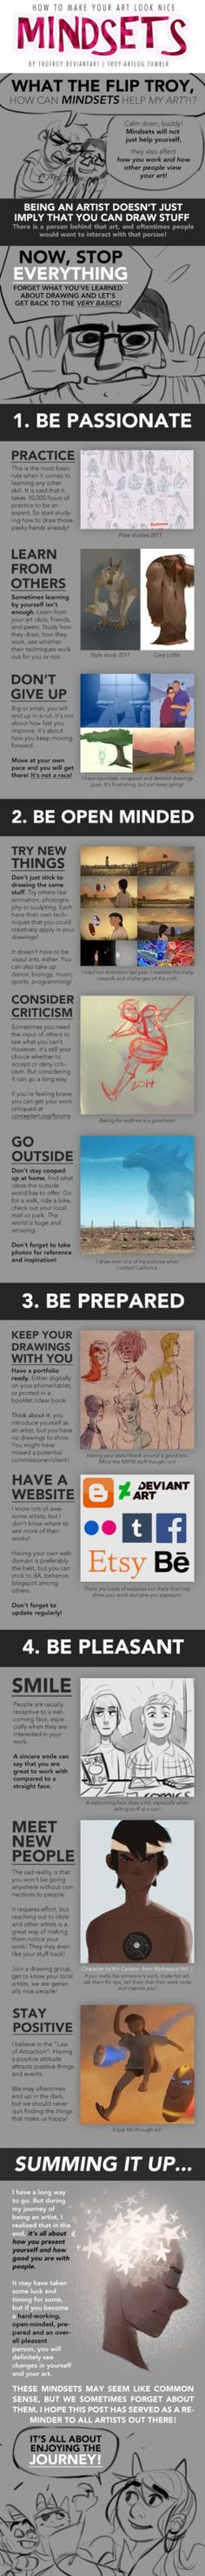 "Hi guys! Here's the next installment for my ""How to Make Your Art Look Nice"" tutorial series. For those planning to improve their work ethics, this is for you!I came across the realization that it&..."